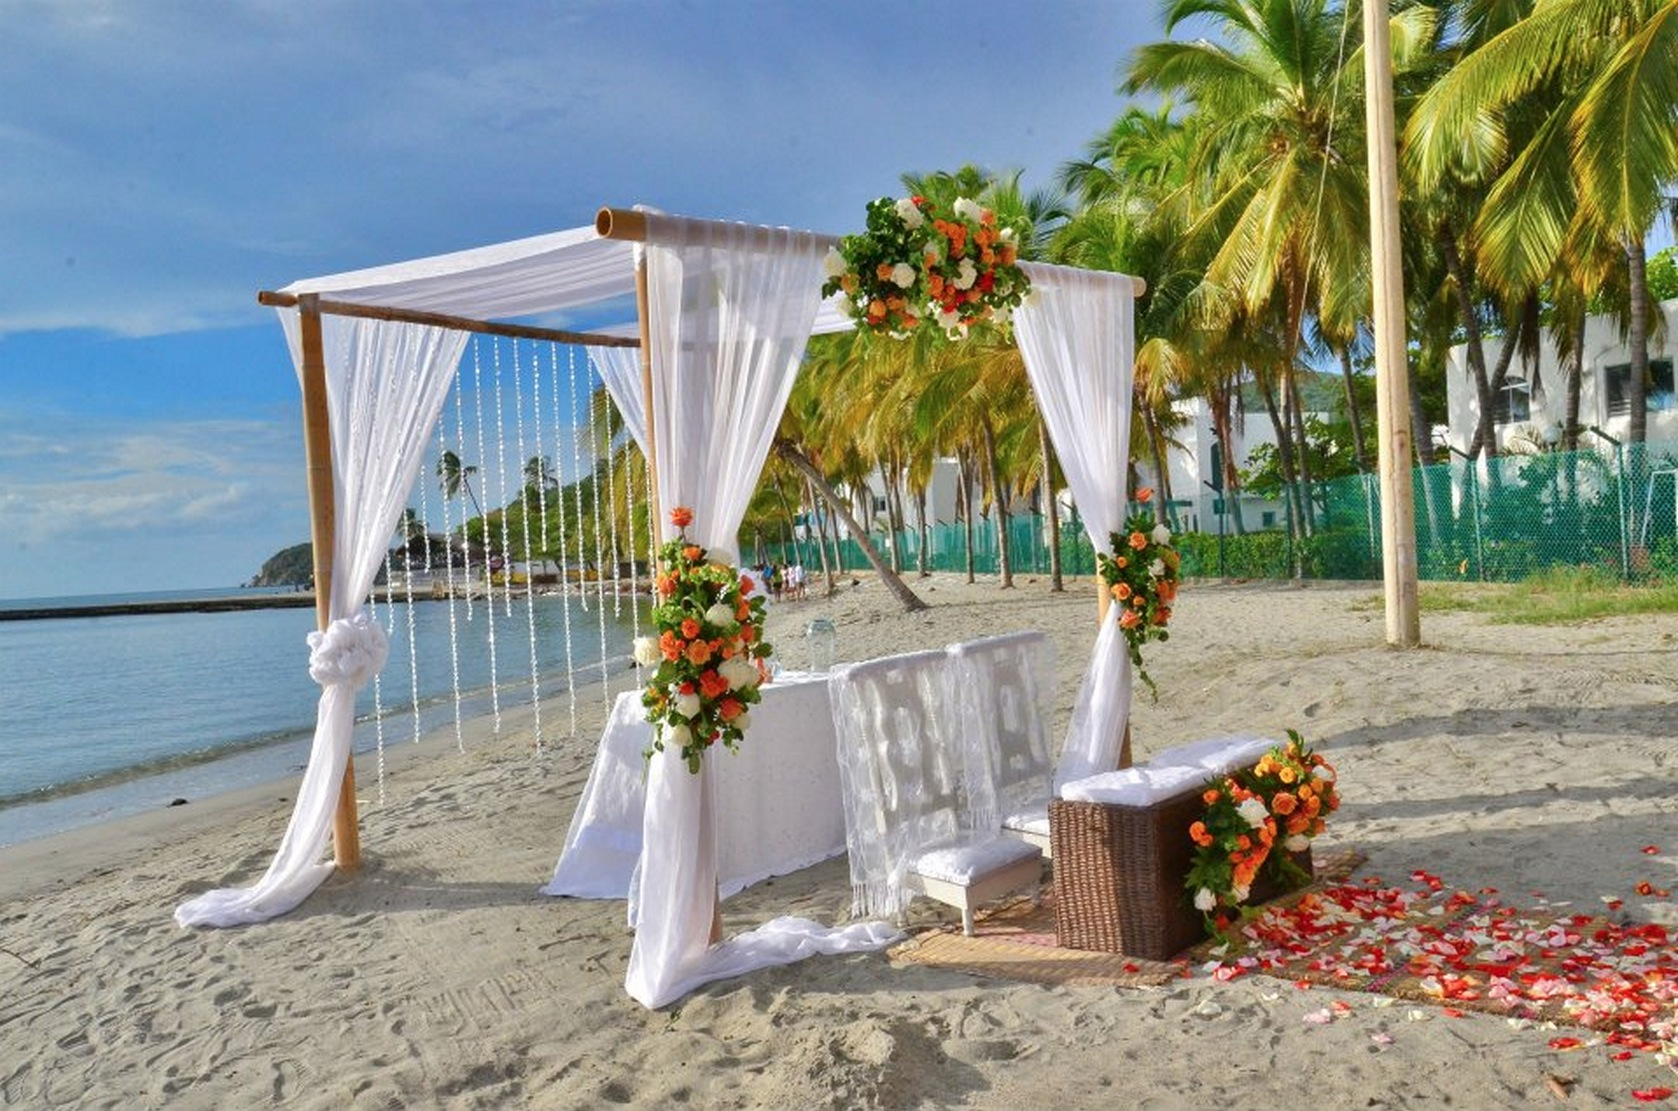 Caribbean Wedding: 301 Moved Permanently